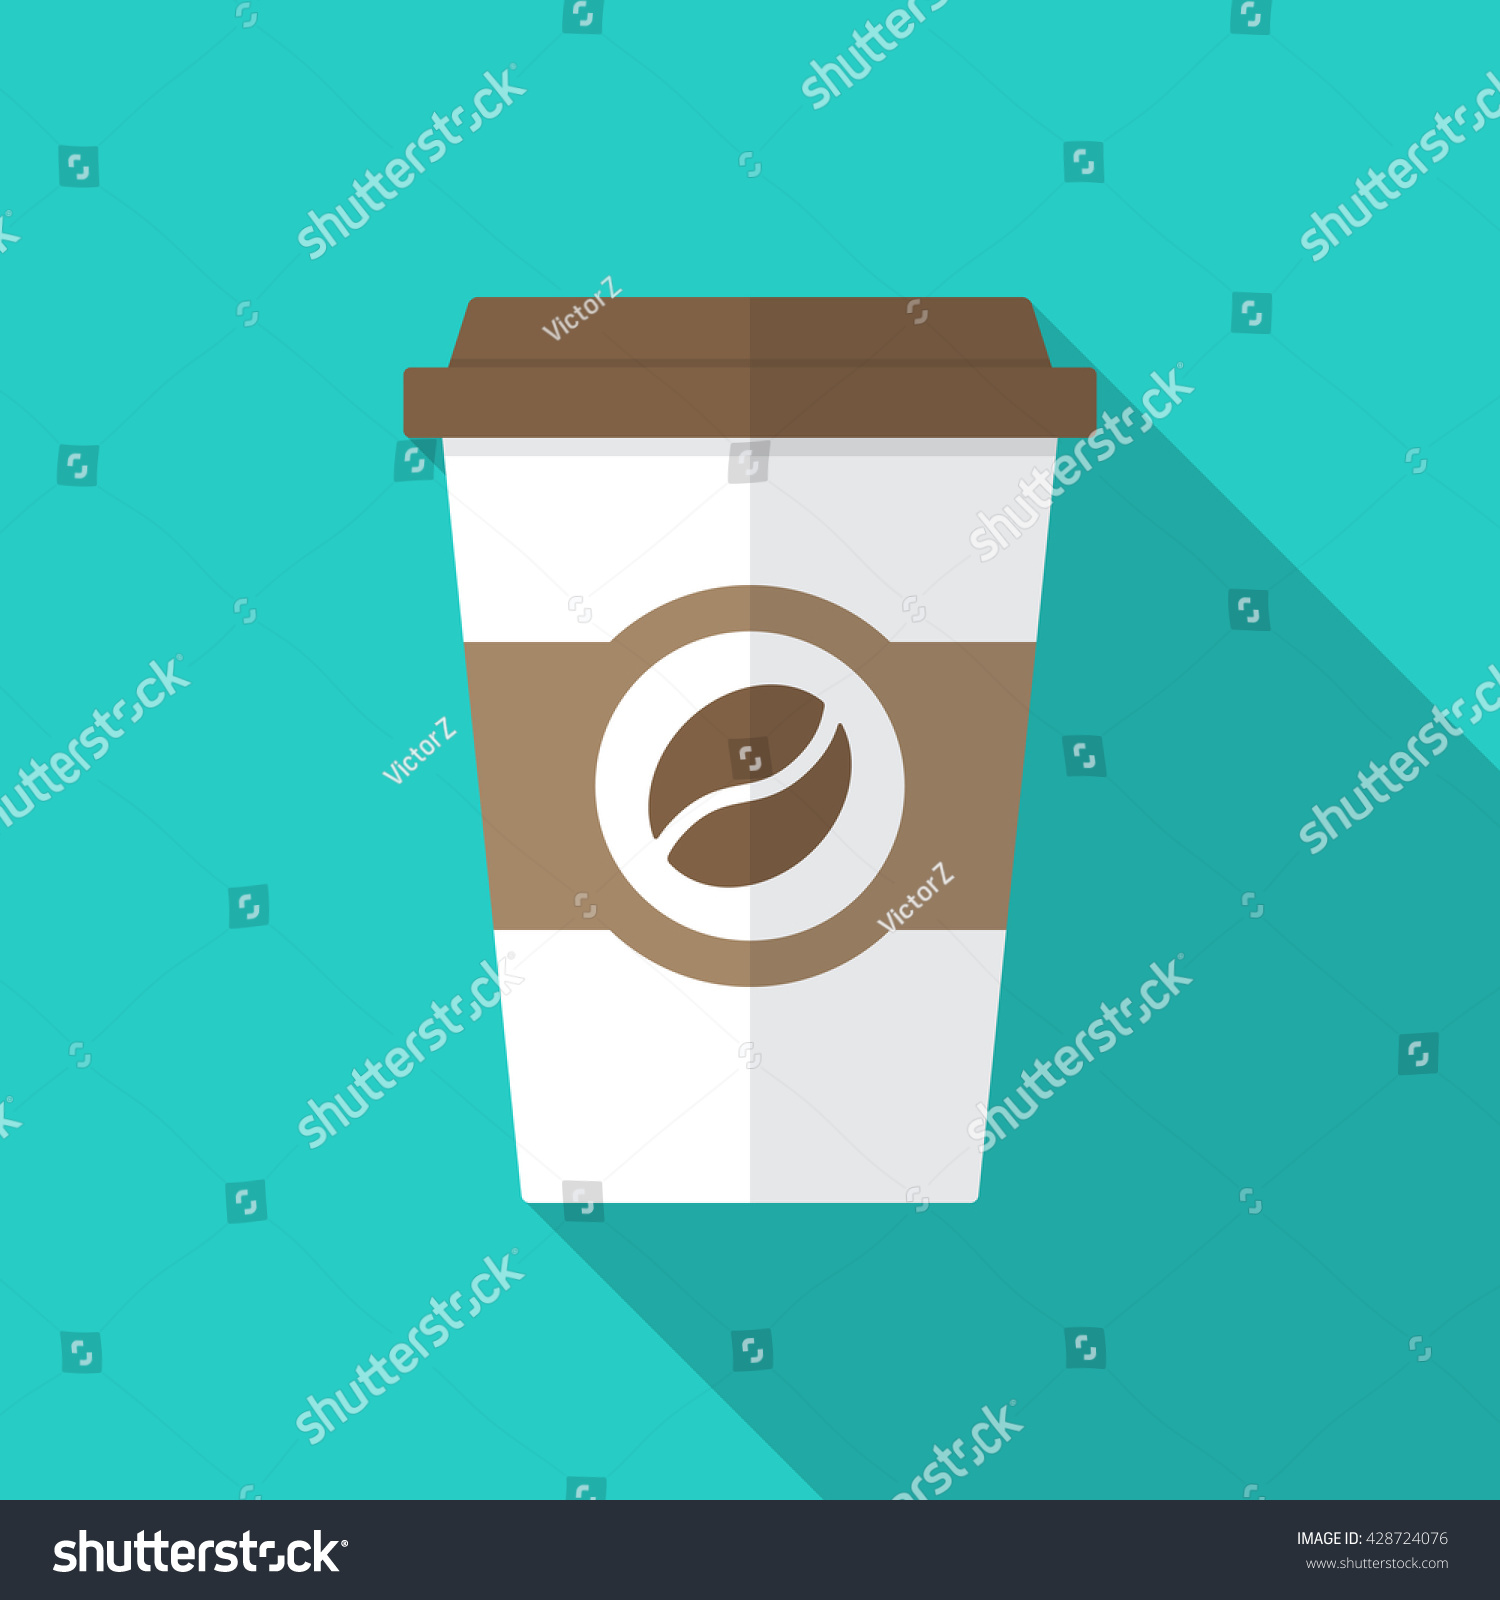 clique mobile coffee essay These 50 prompts are meant to help you discover a topic for an essay or speech developed by process analysis 50 great topics for a process analysis essay search the site go how to make the perfect cup of coffee or tea how to save money while saving the environment how to build a great.